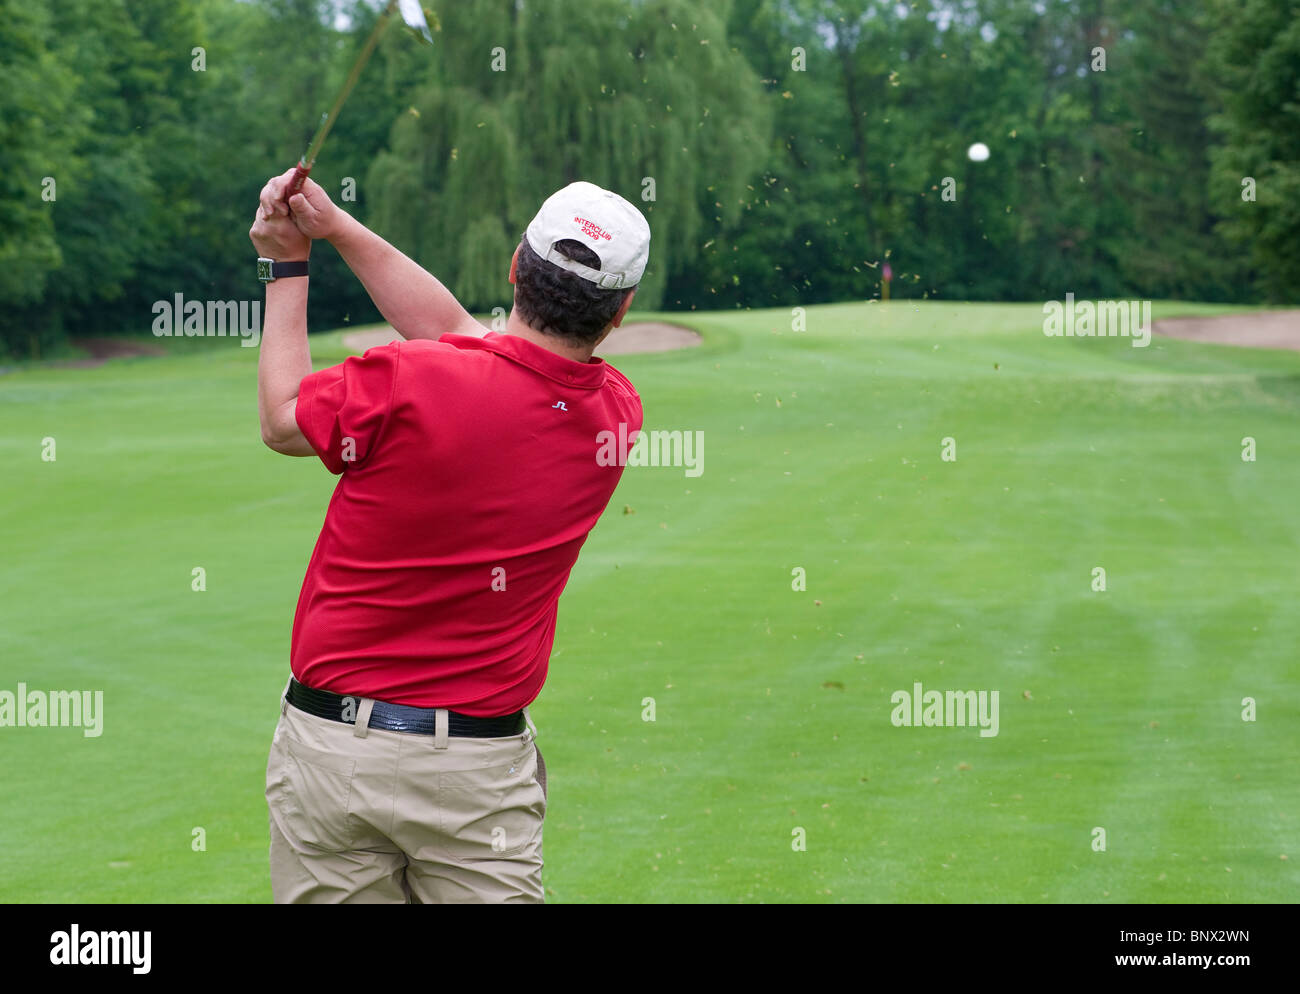 A golfer watches his ball flying towards the green. - Stock Image